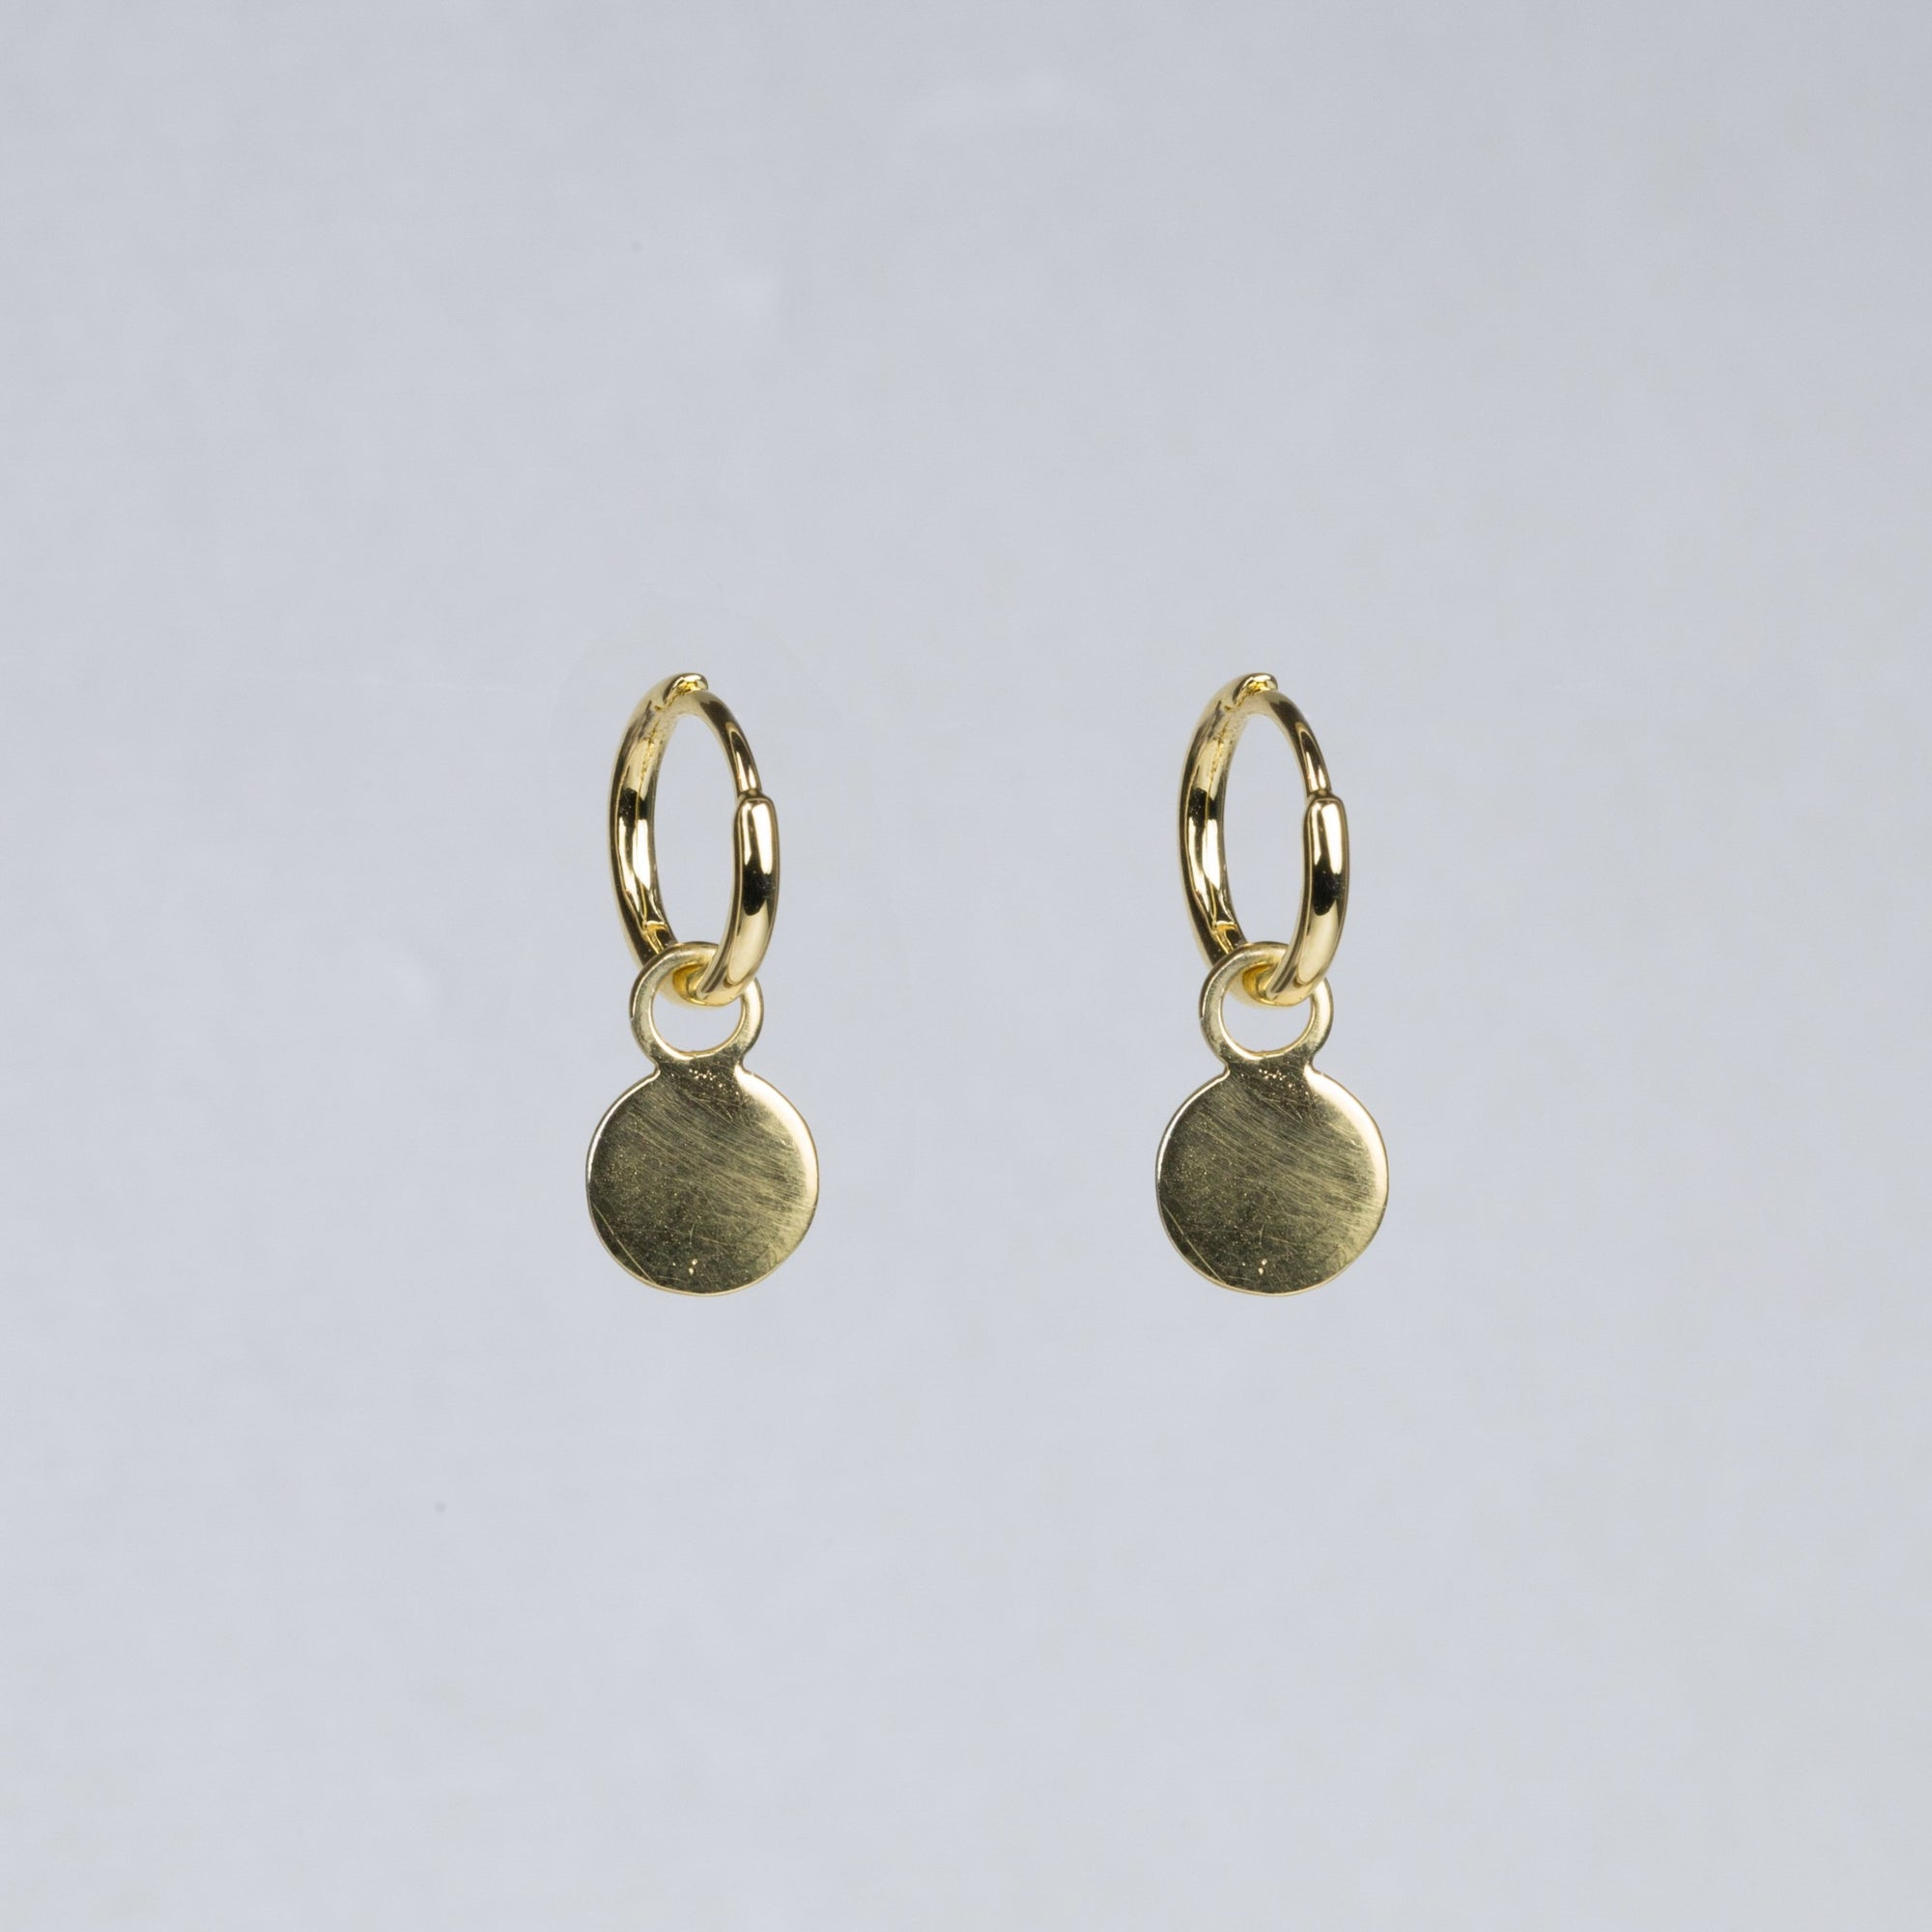 Charmed Hoop Earrings - Disc in yellow gold